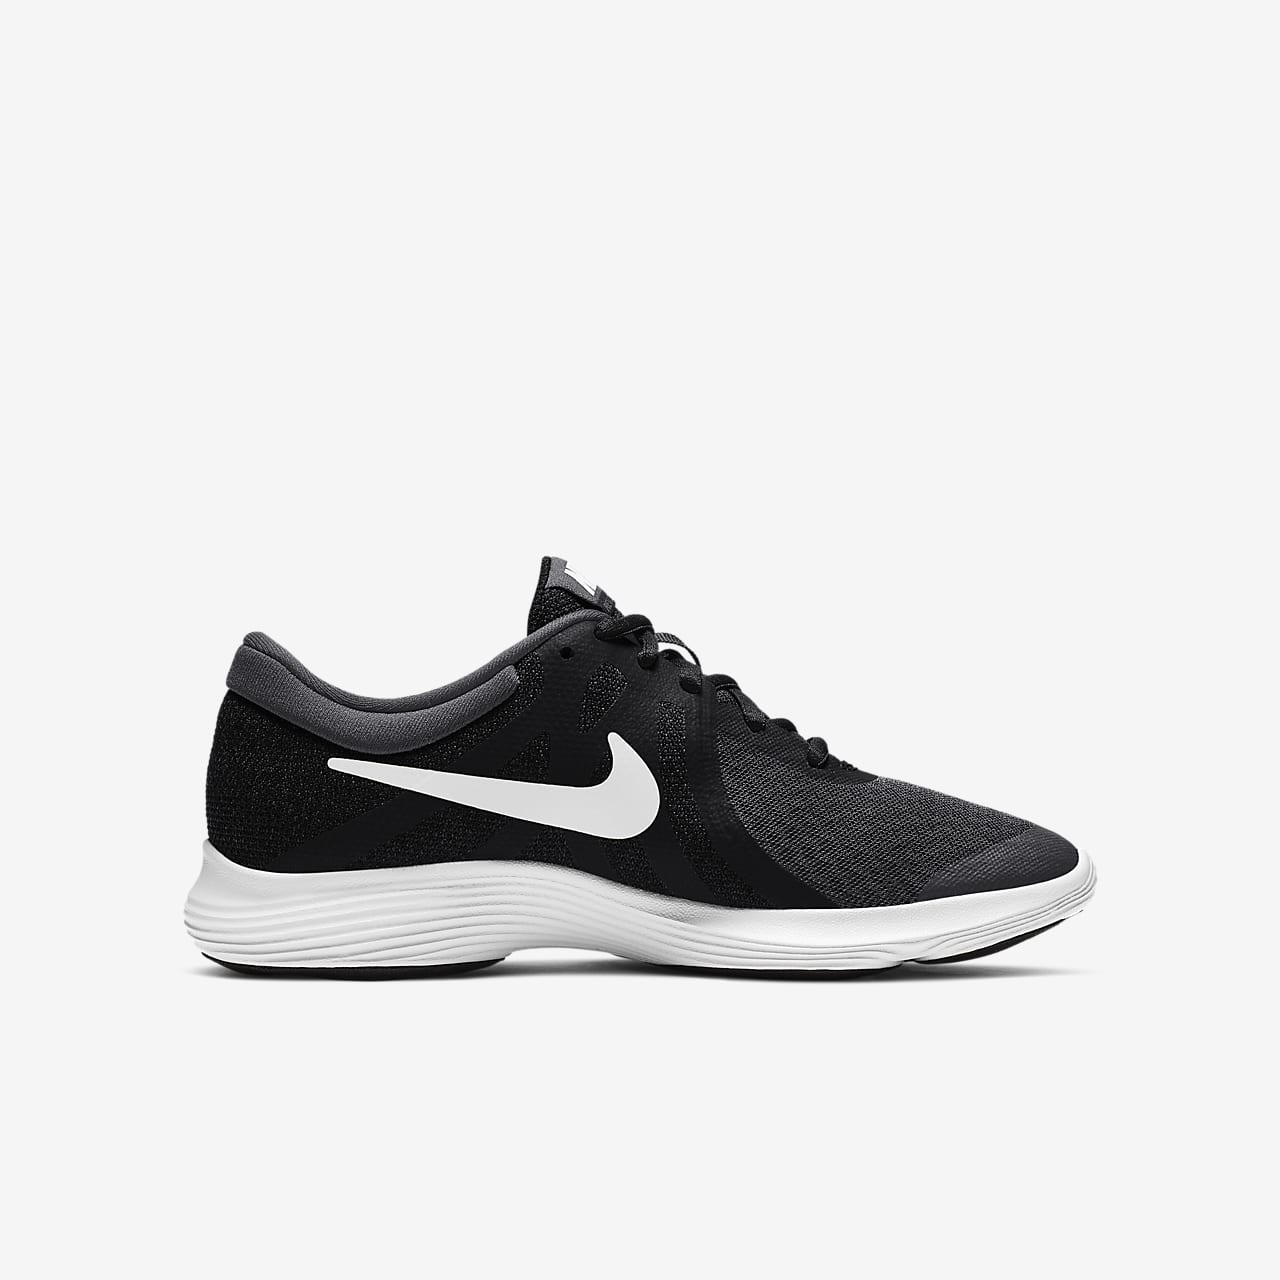 official photos 01a75 e7ea5 Nike Revolution 4